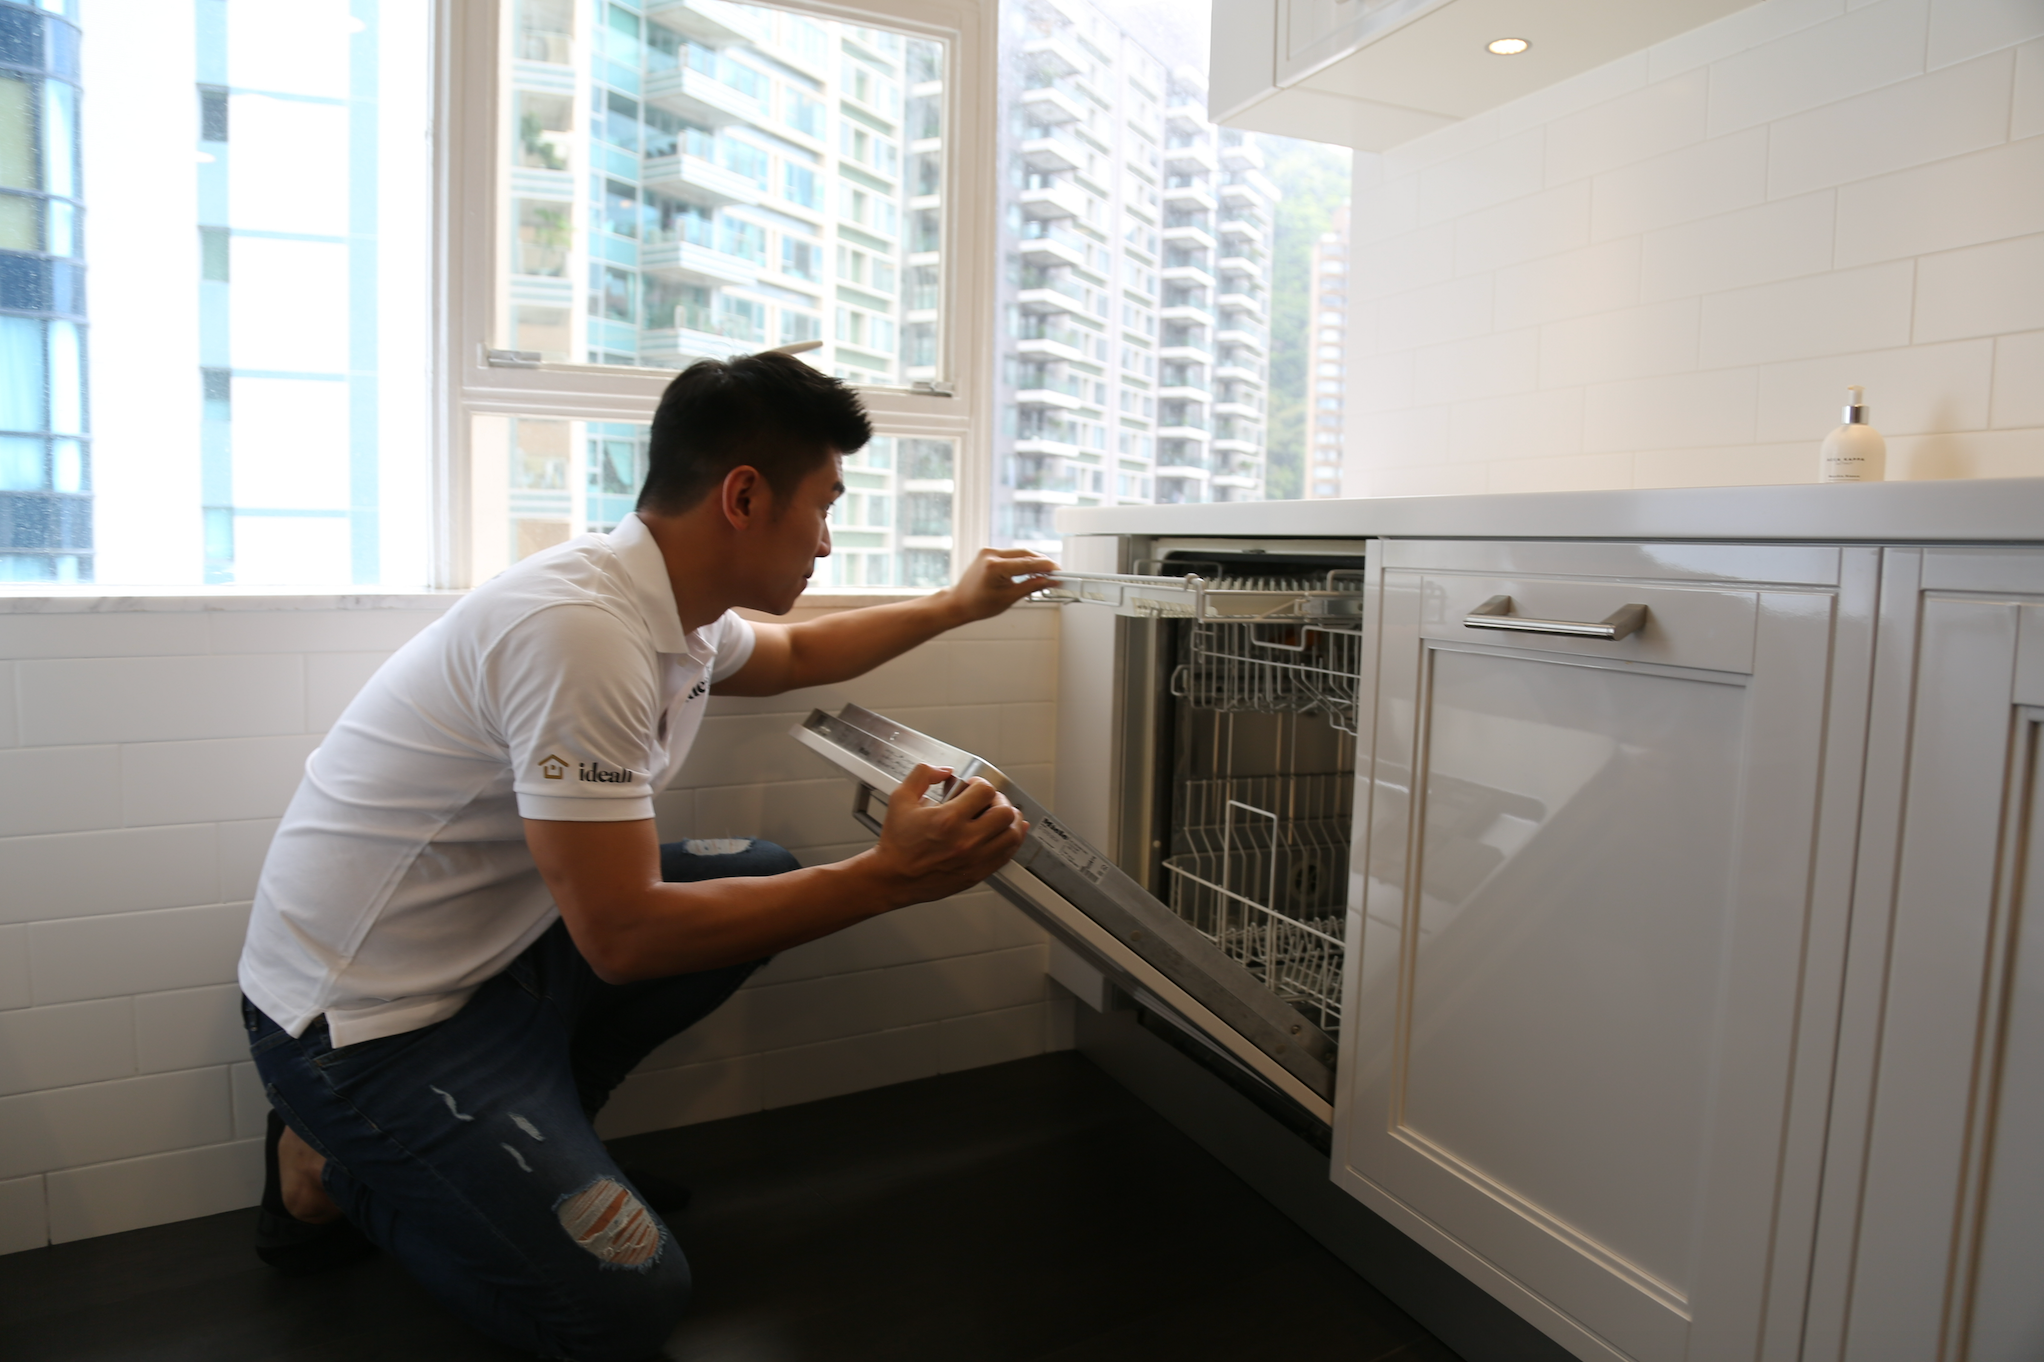 Image of a man installing the dishwasher.